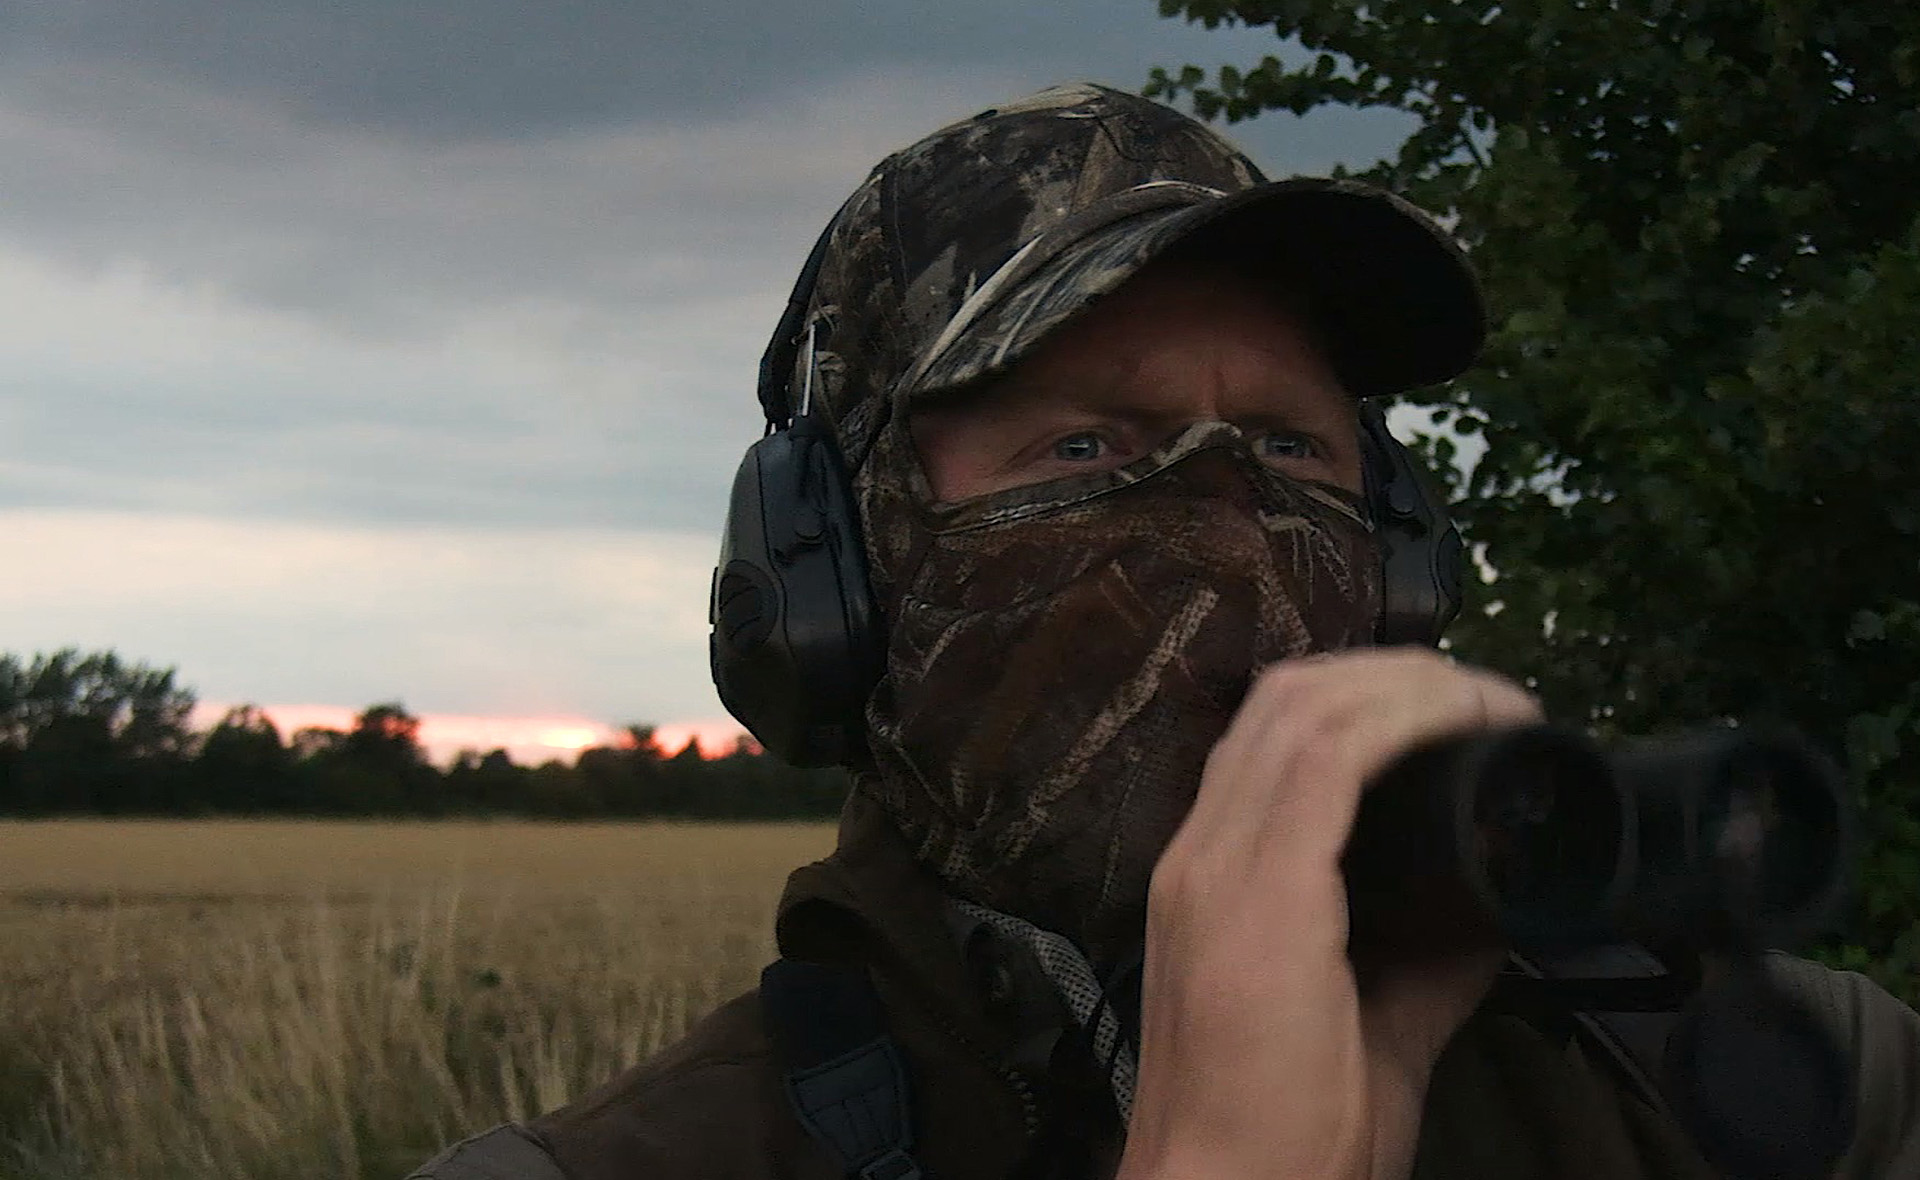 Ian Harford with Hawke Optics